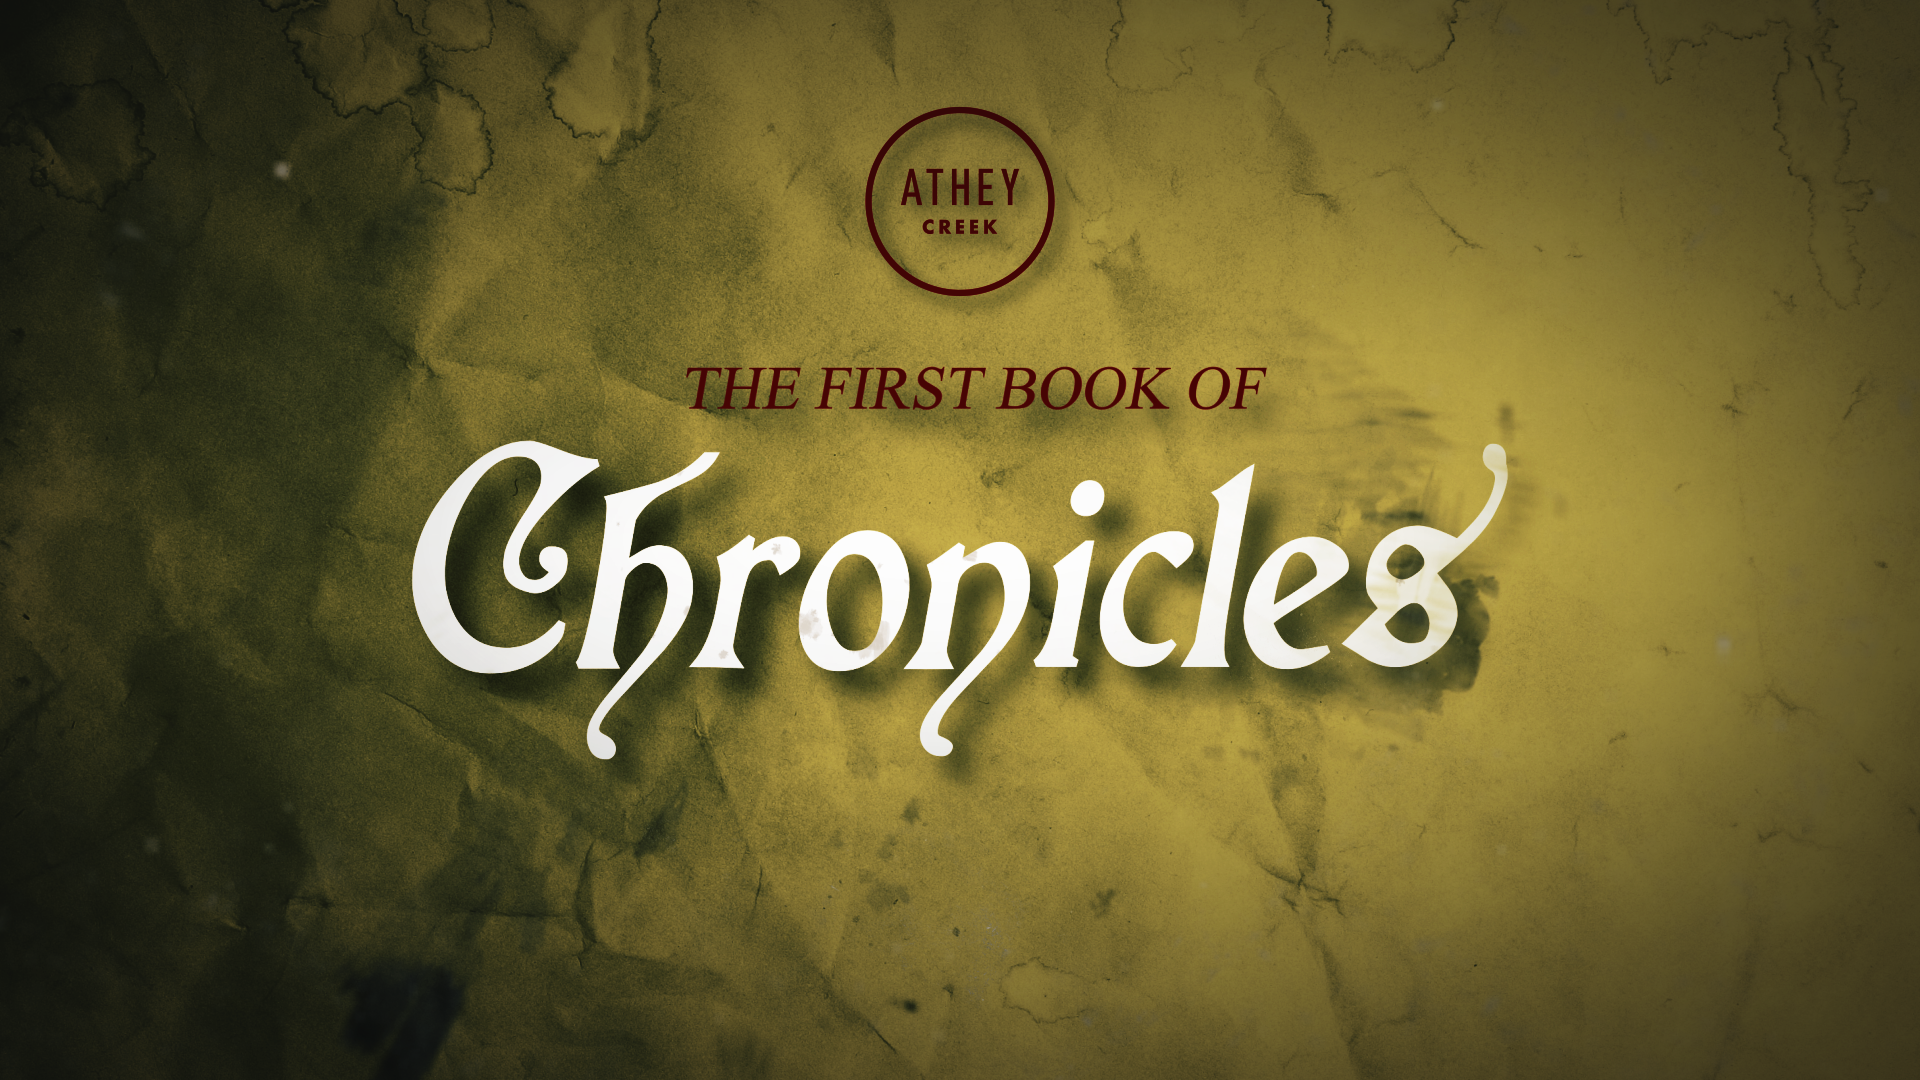 Teaching artwork for 1 Chronicles